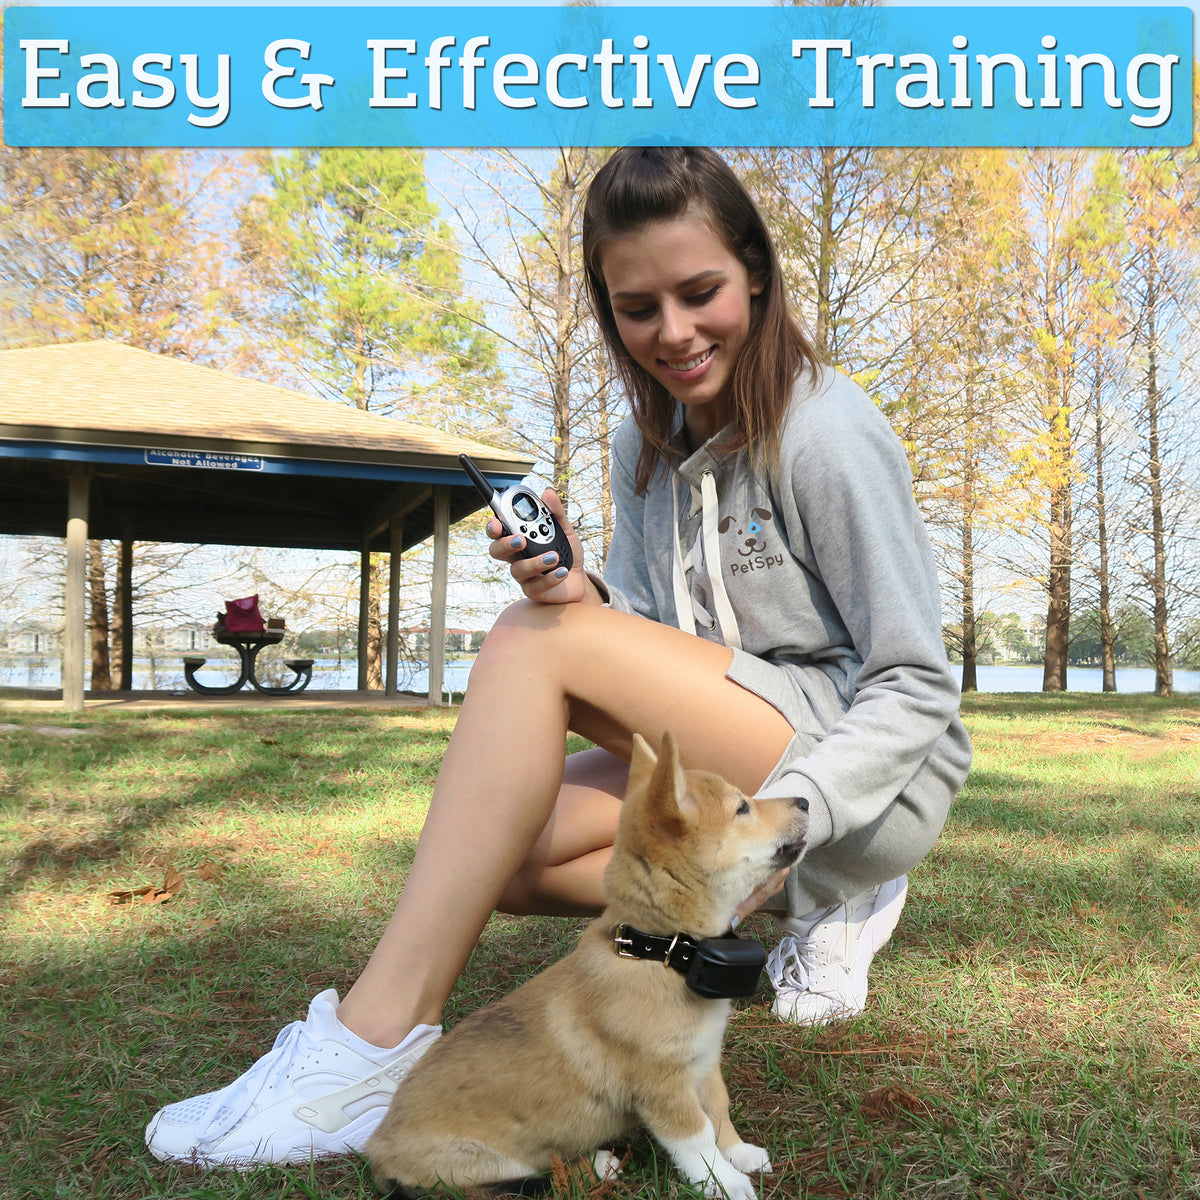 Girl training her puppy with PetSpy dog shock collar